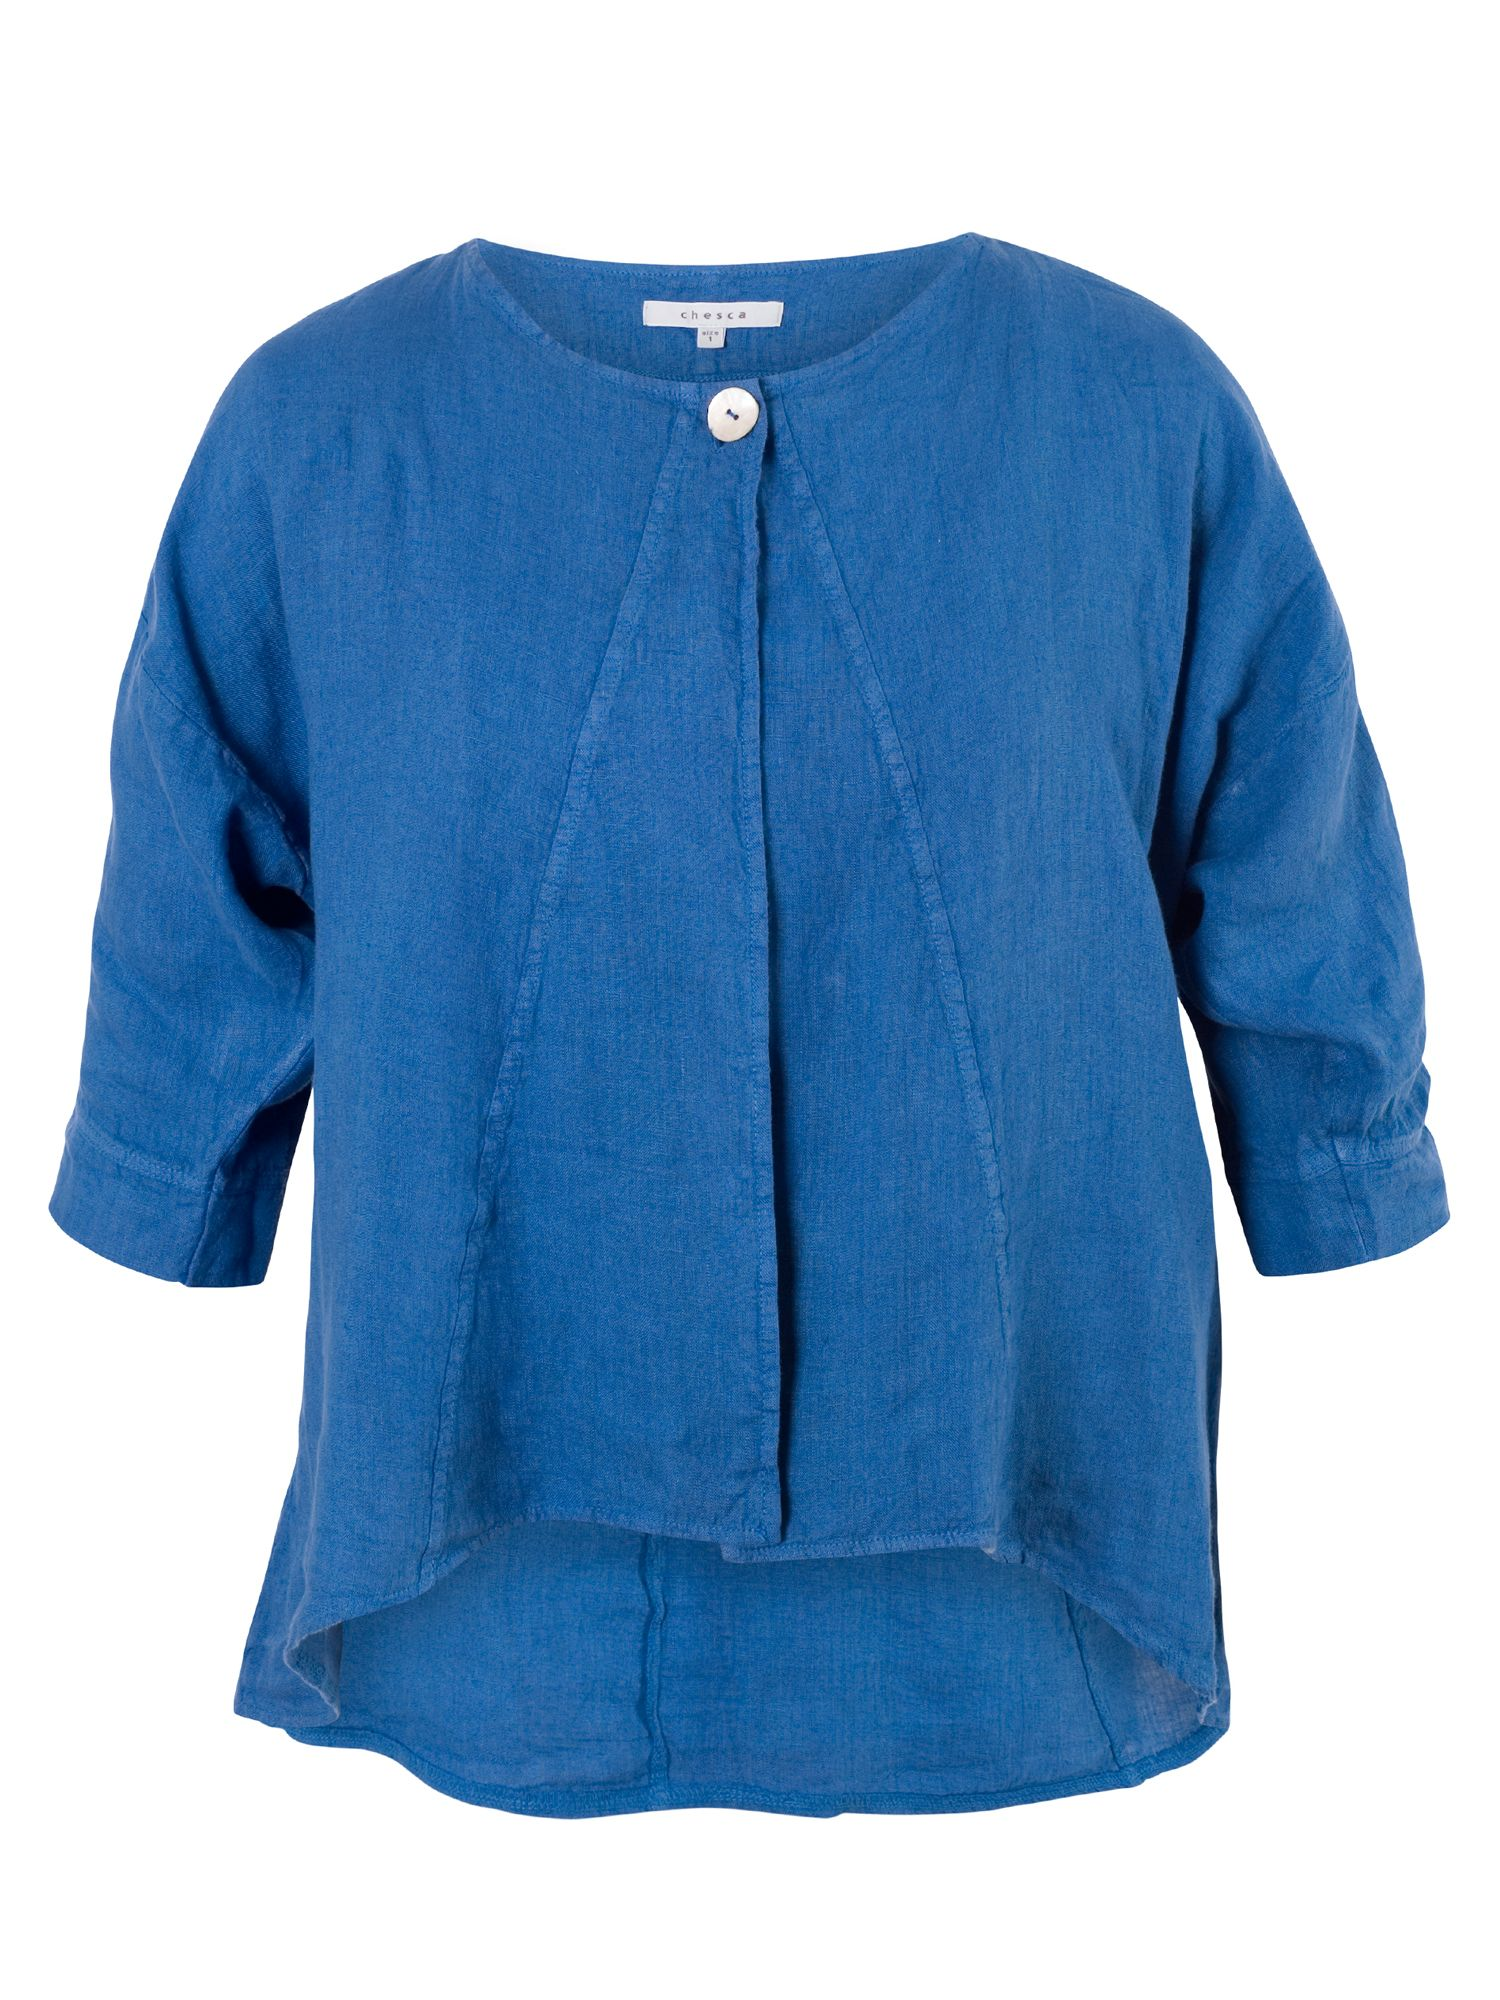 Chesca Linen Jacket, Blue